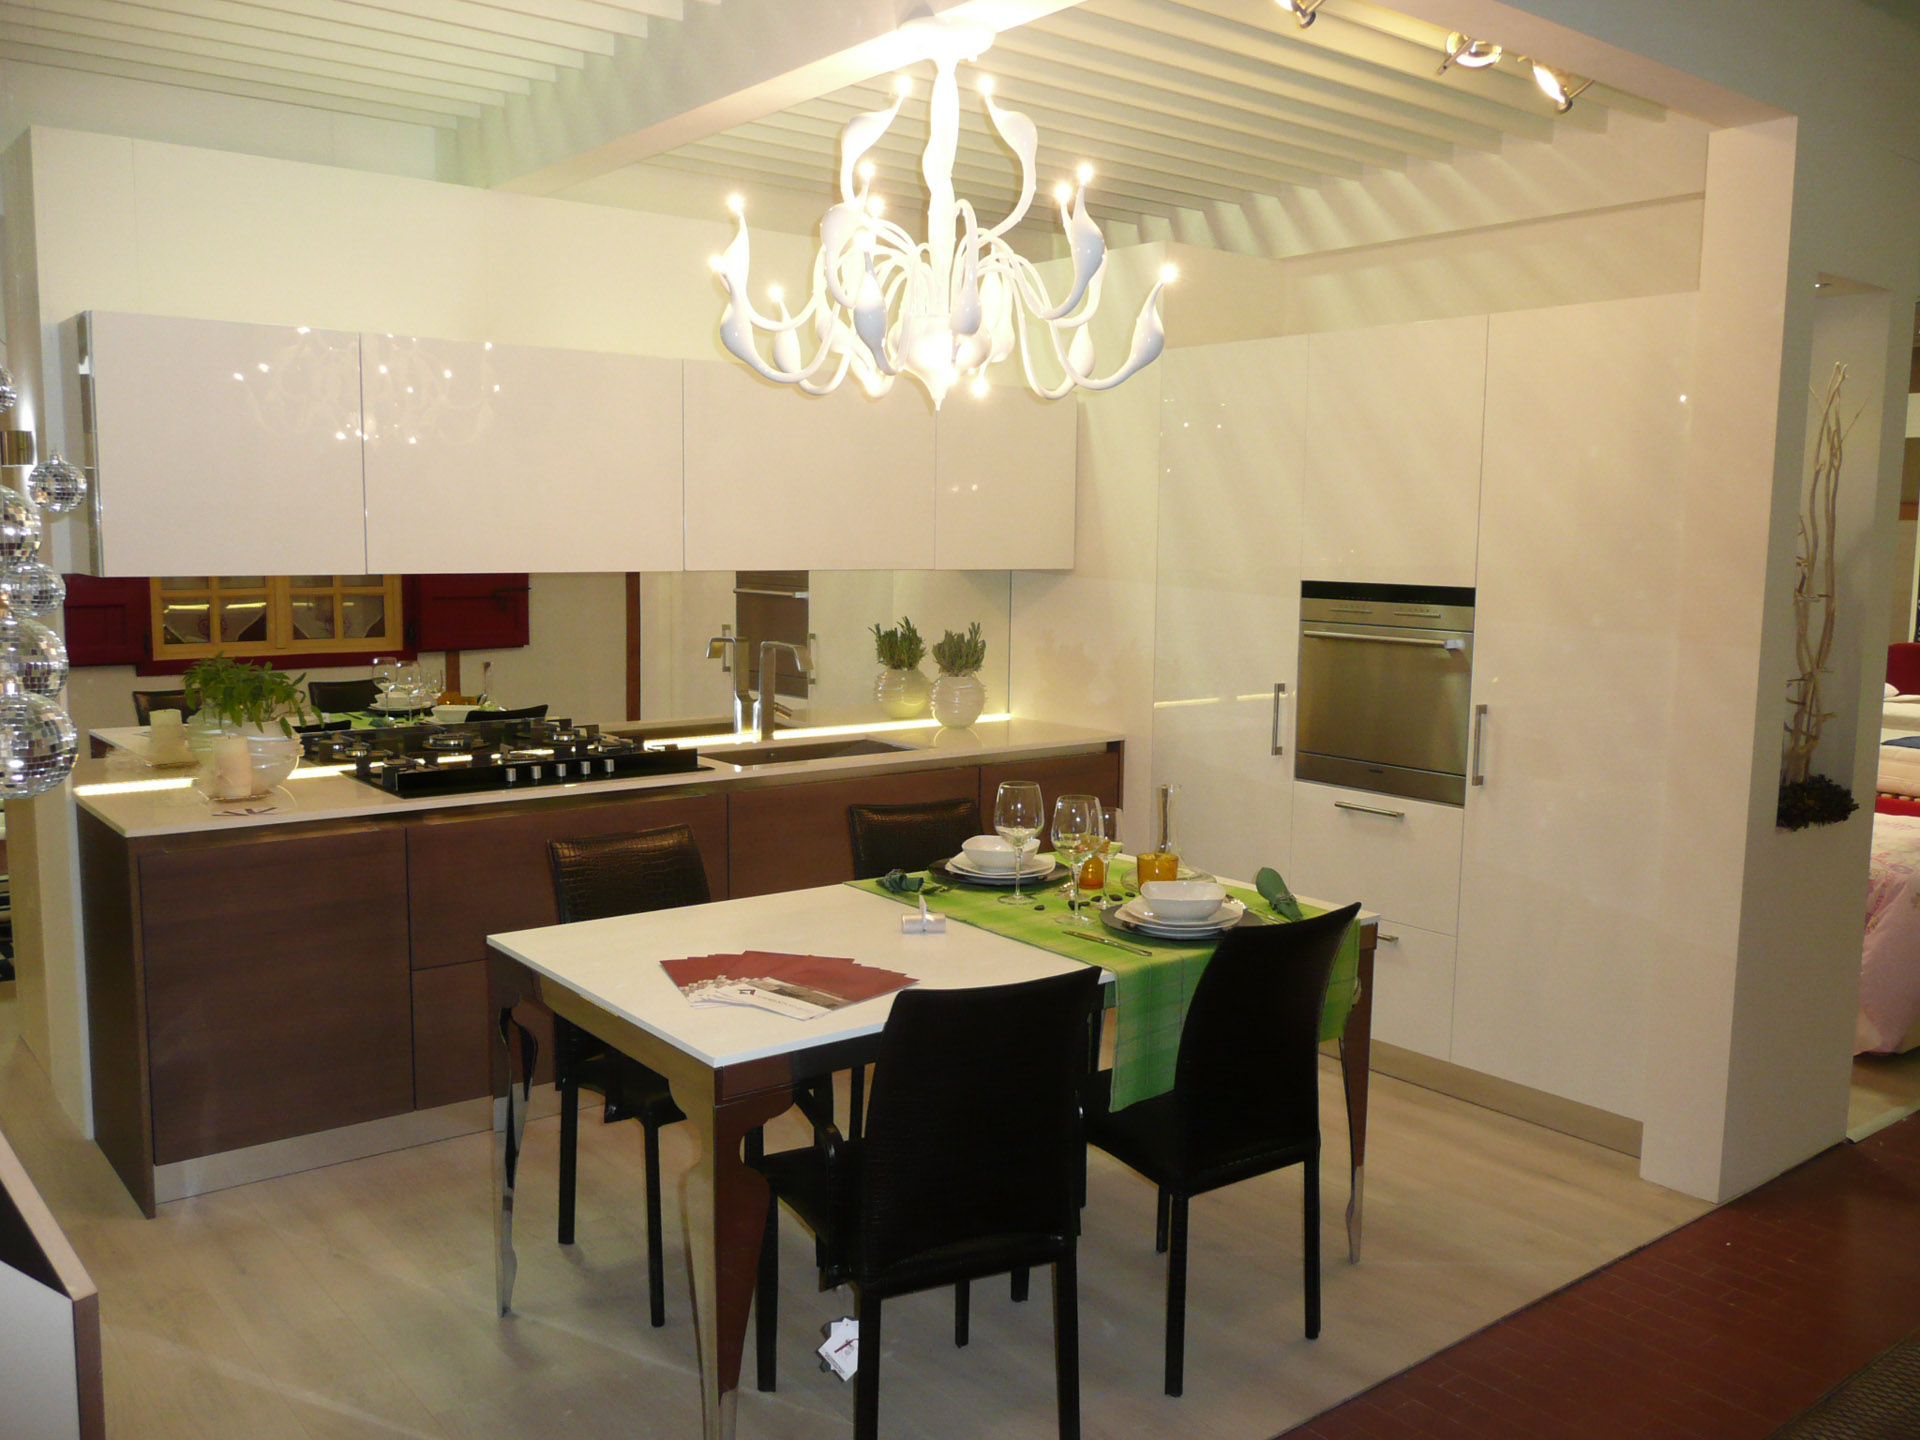 Cucina fiera - Fair kitchen